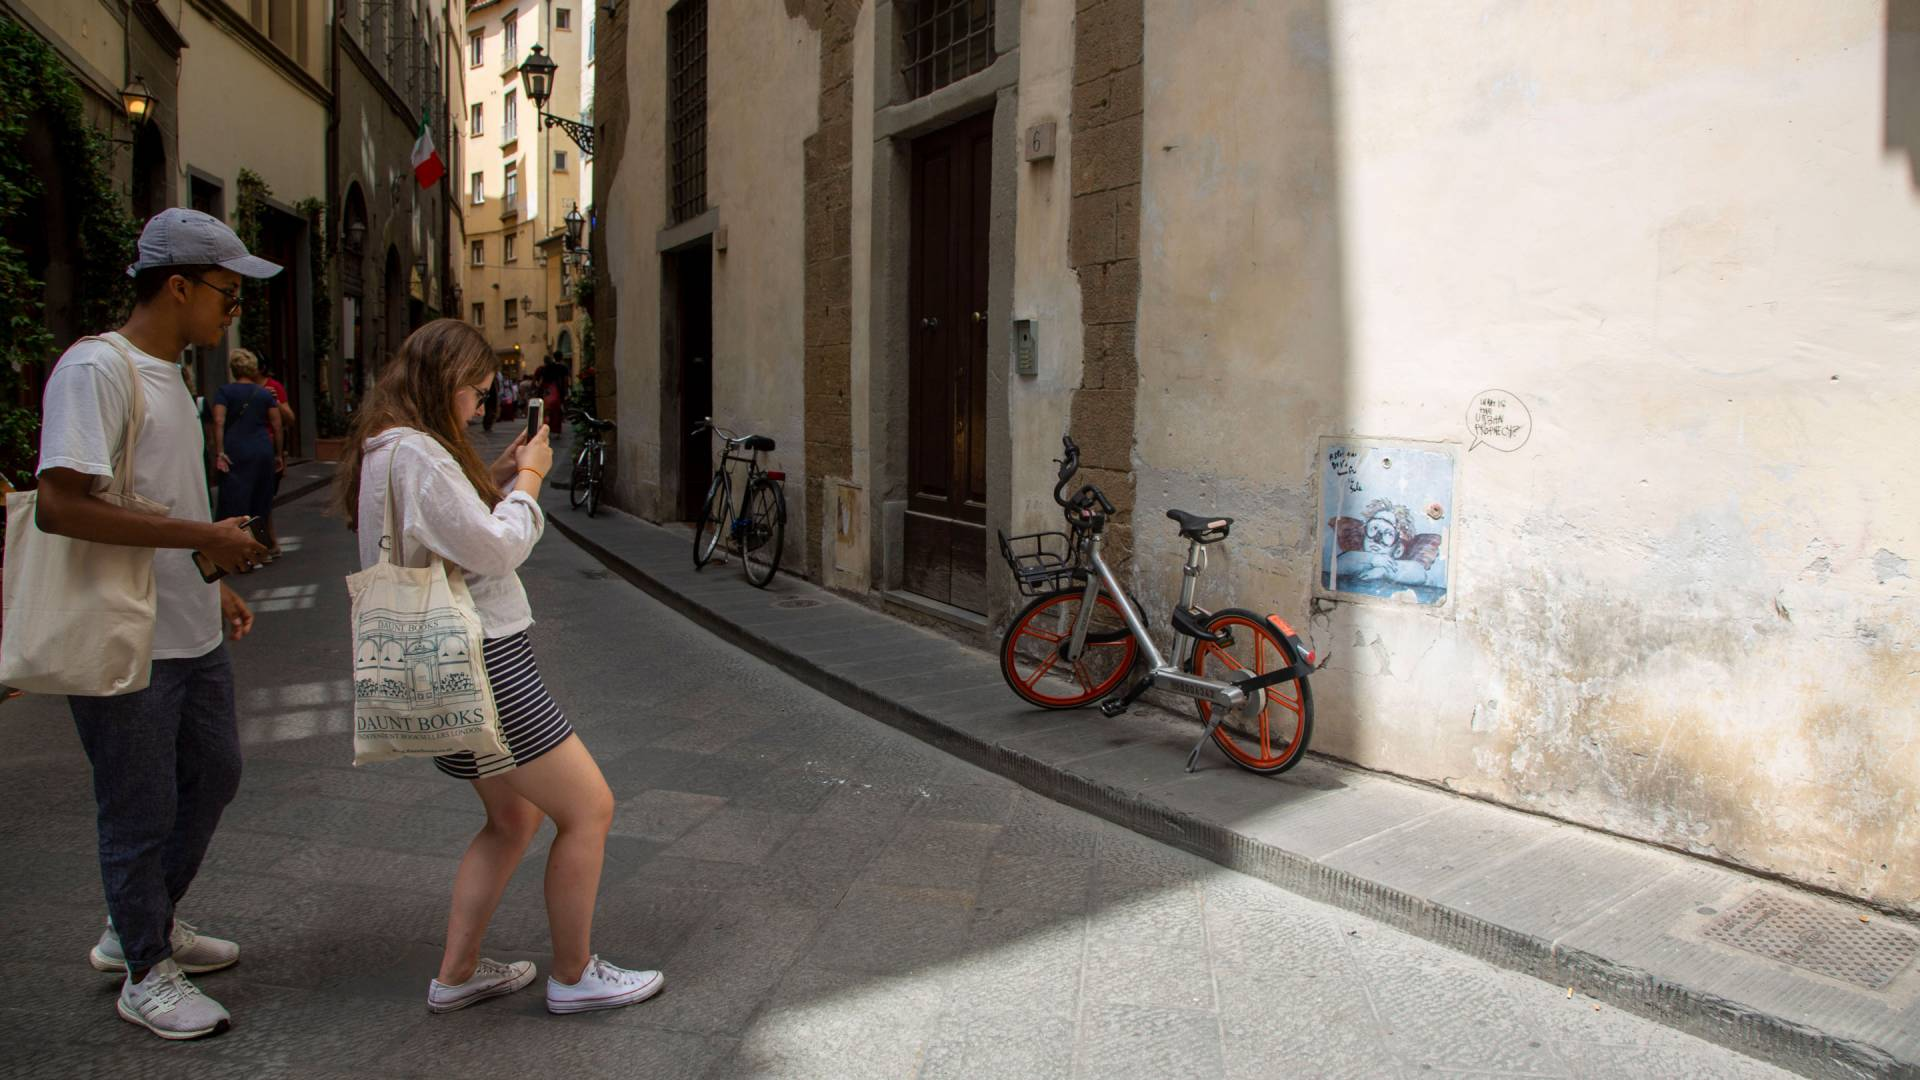 Students take photos of graffiti in Florence